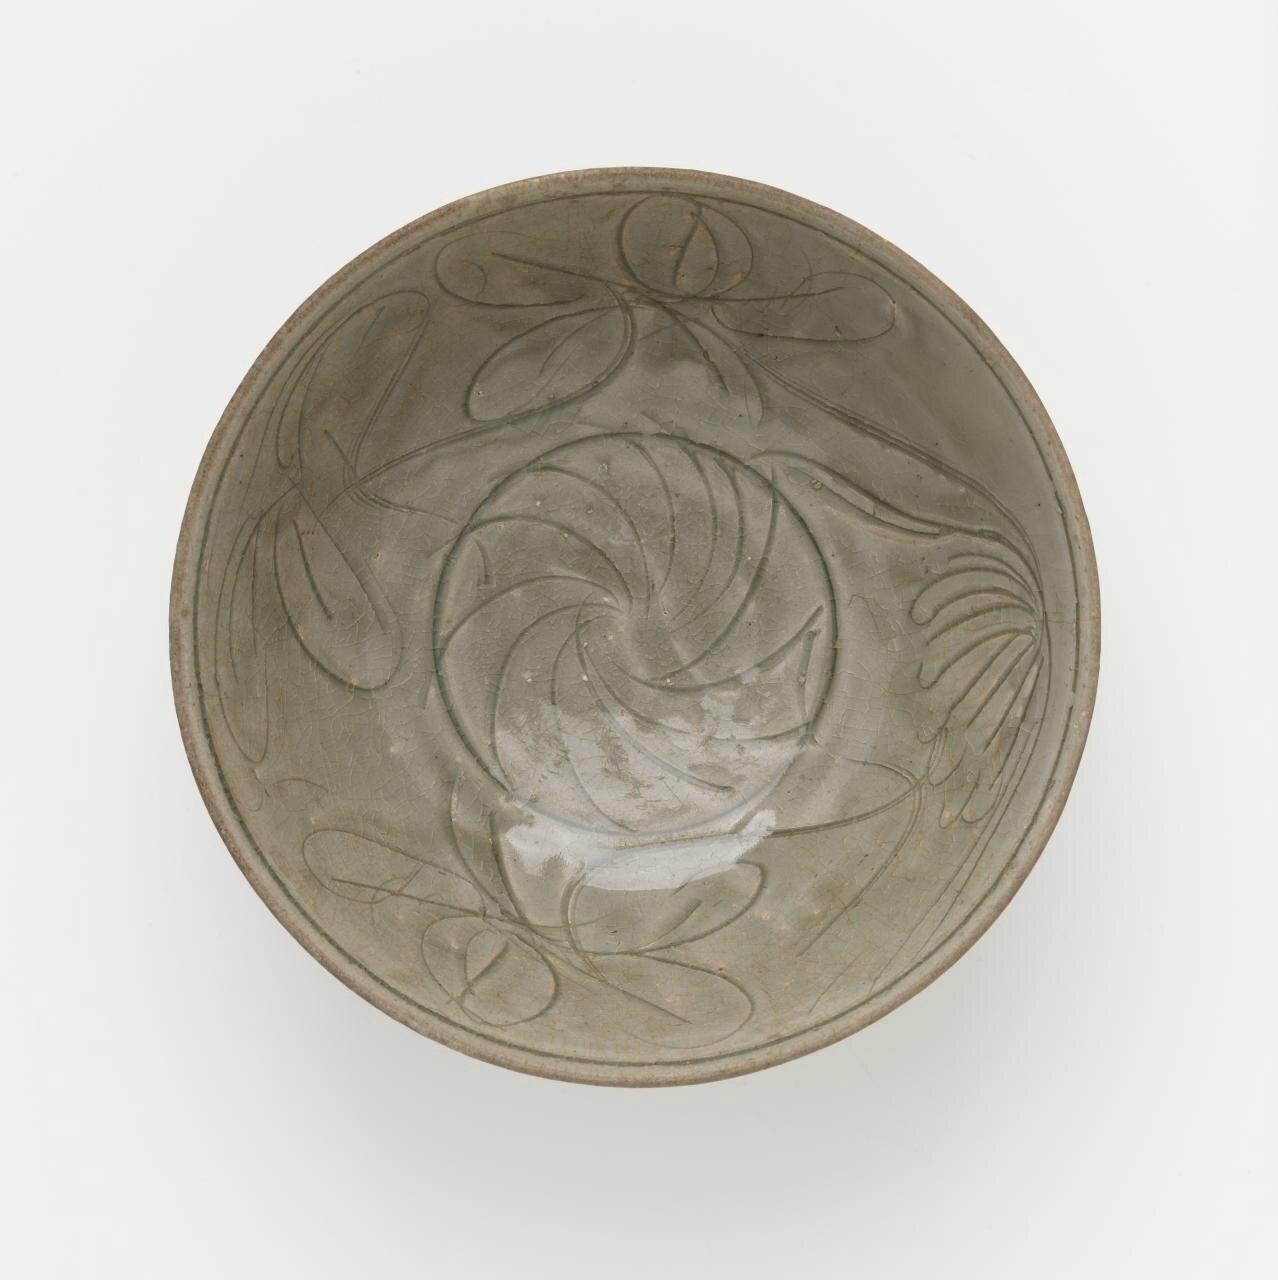 Bowl, Southern Song dynasty, 1127-1279